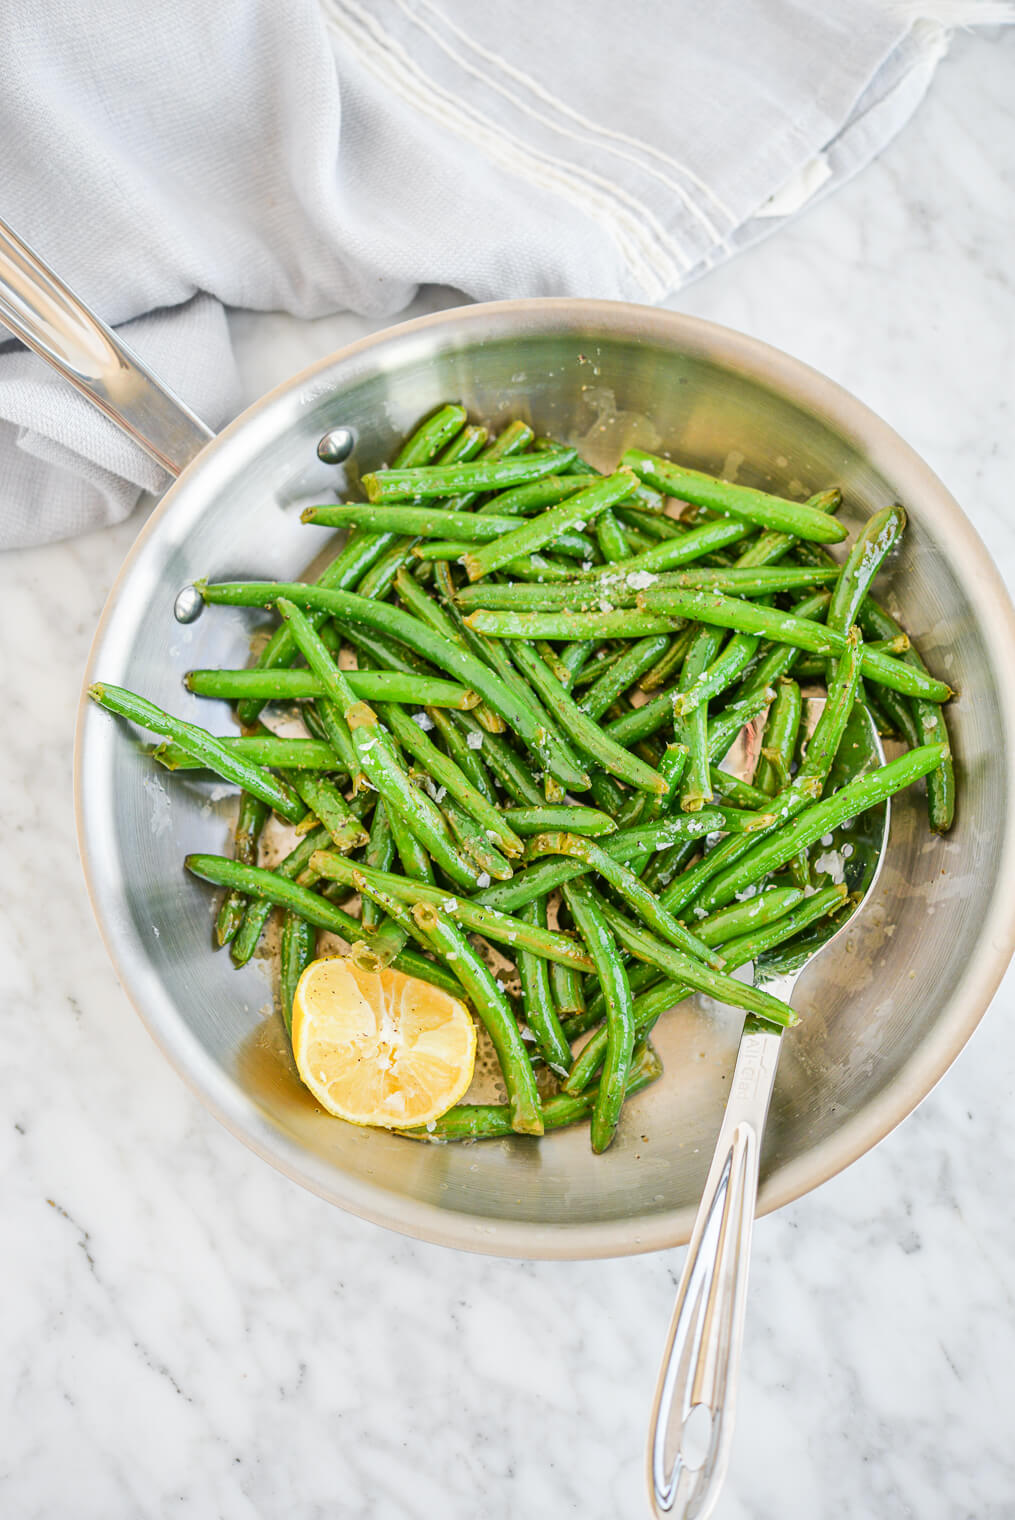 top view of bright green sauteed green beans in a stainless steel pan next to a lemon wedge